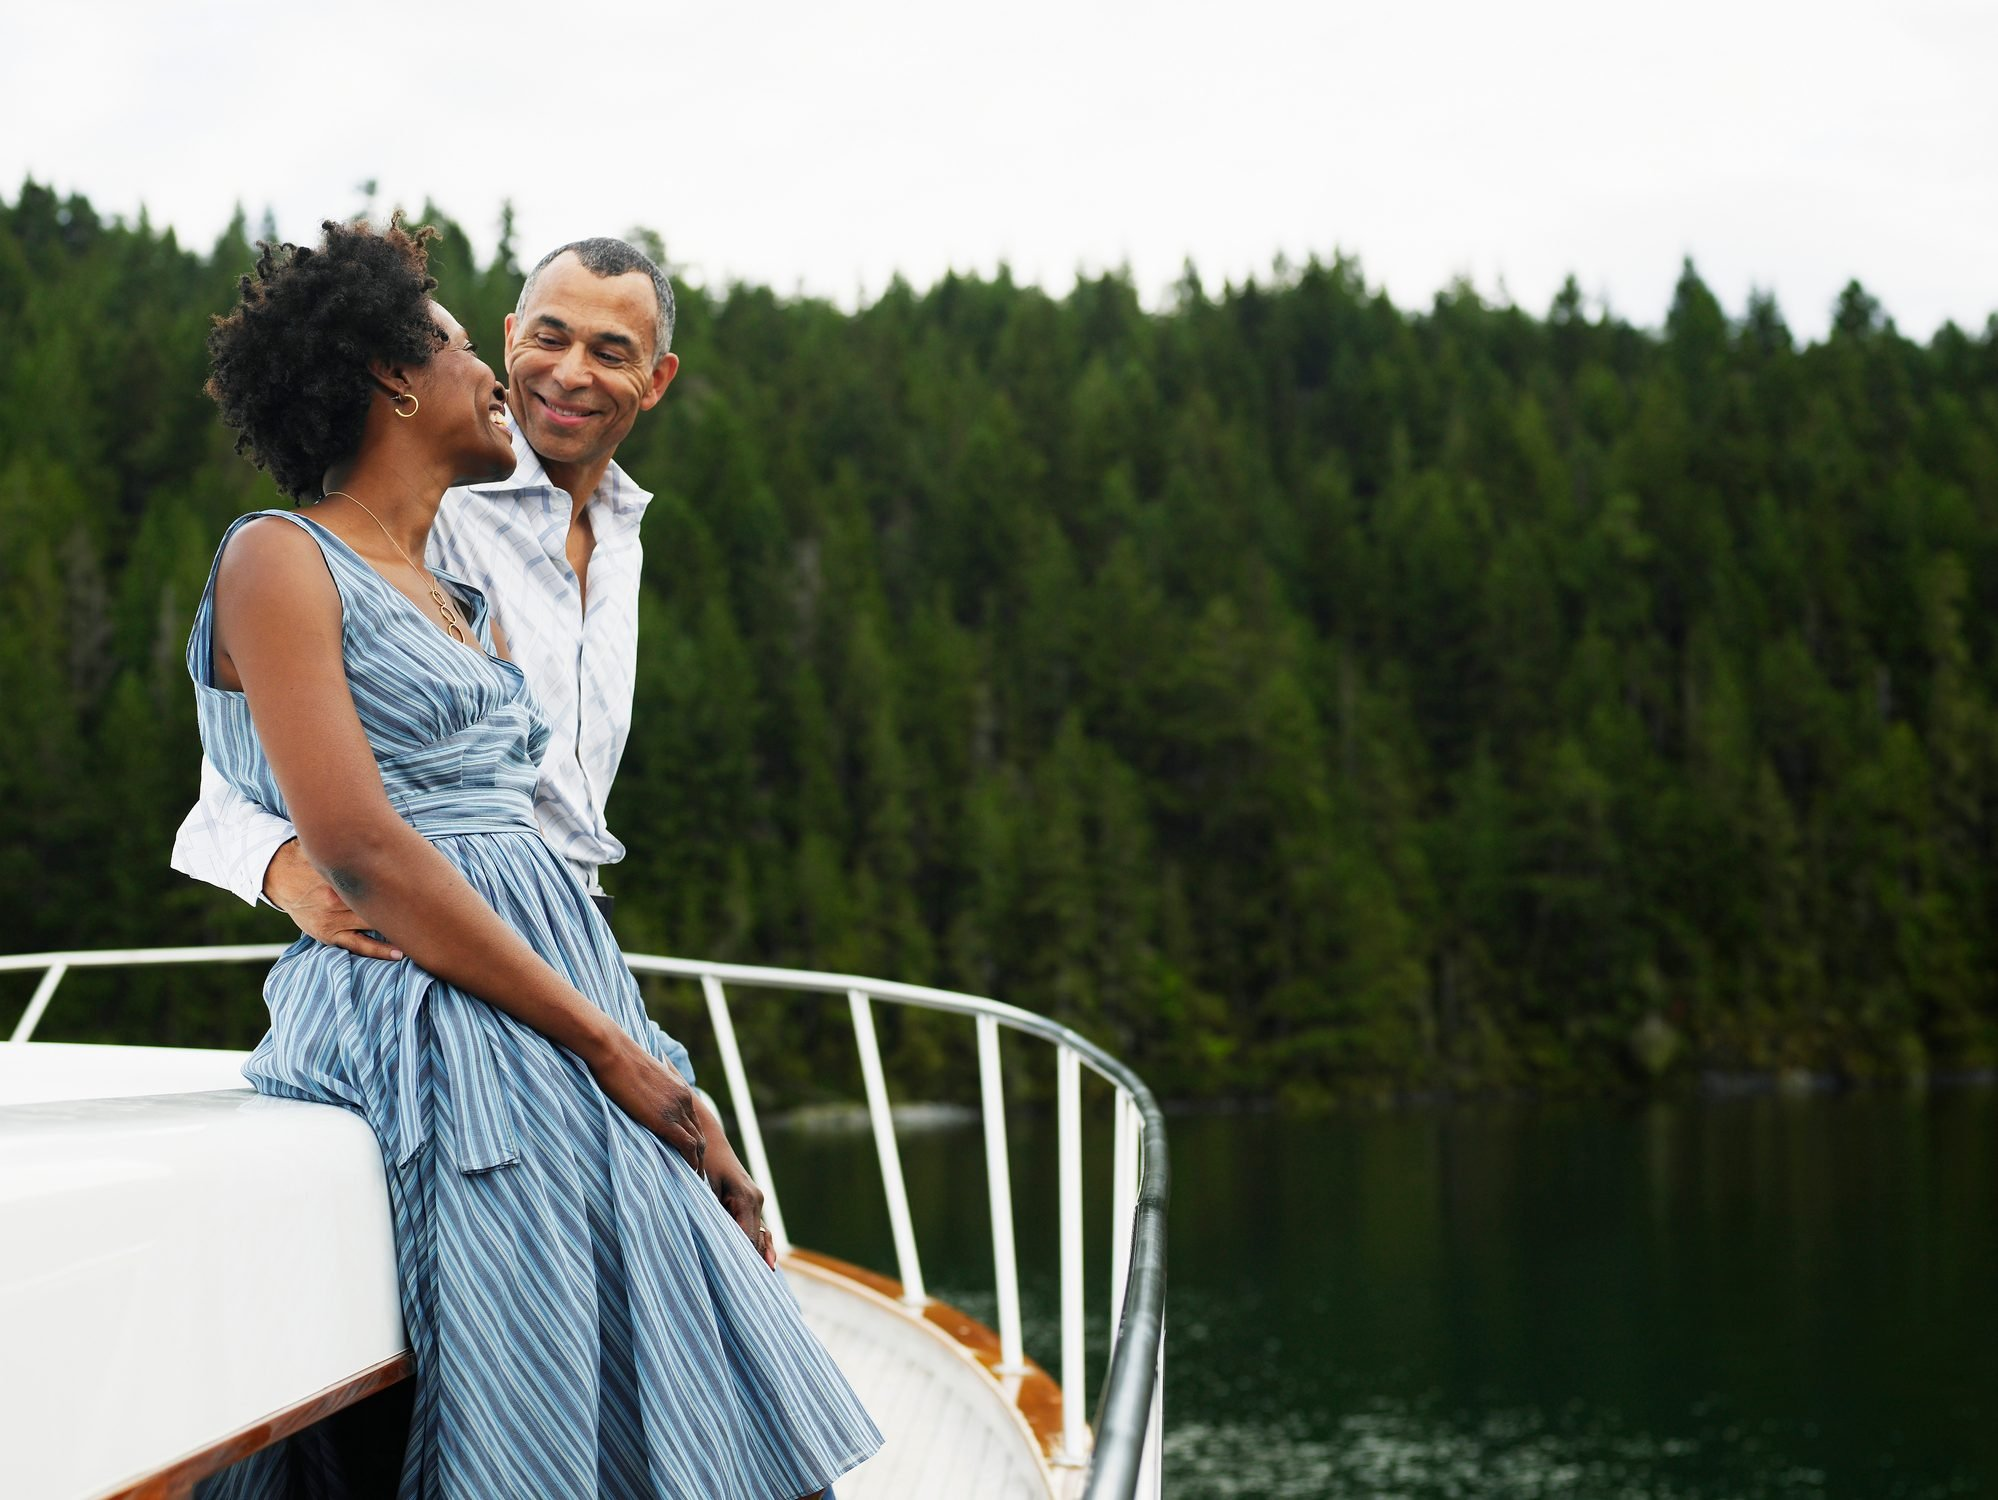 Mature man with arm around woman on yacht, smiling